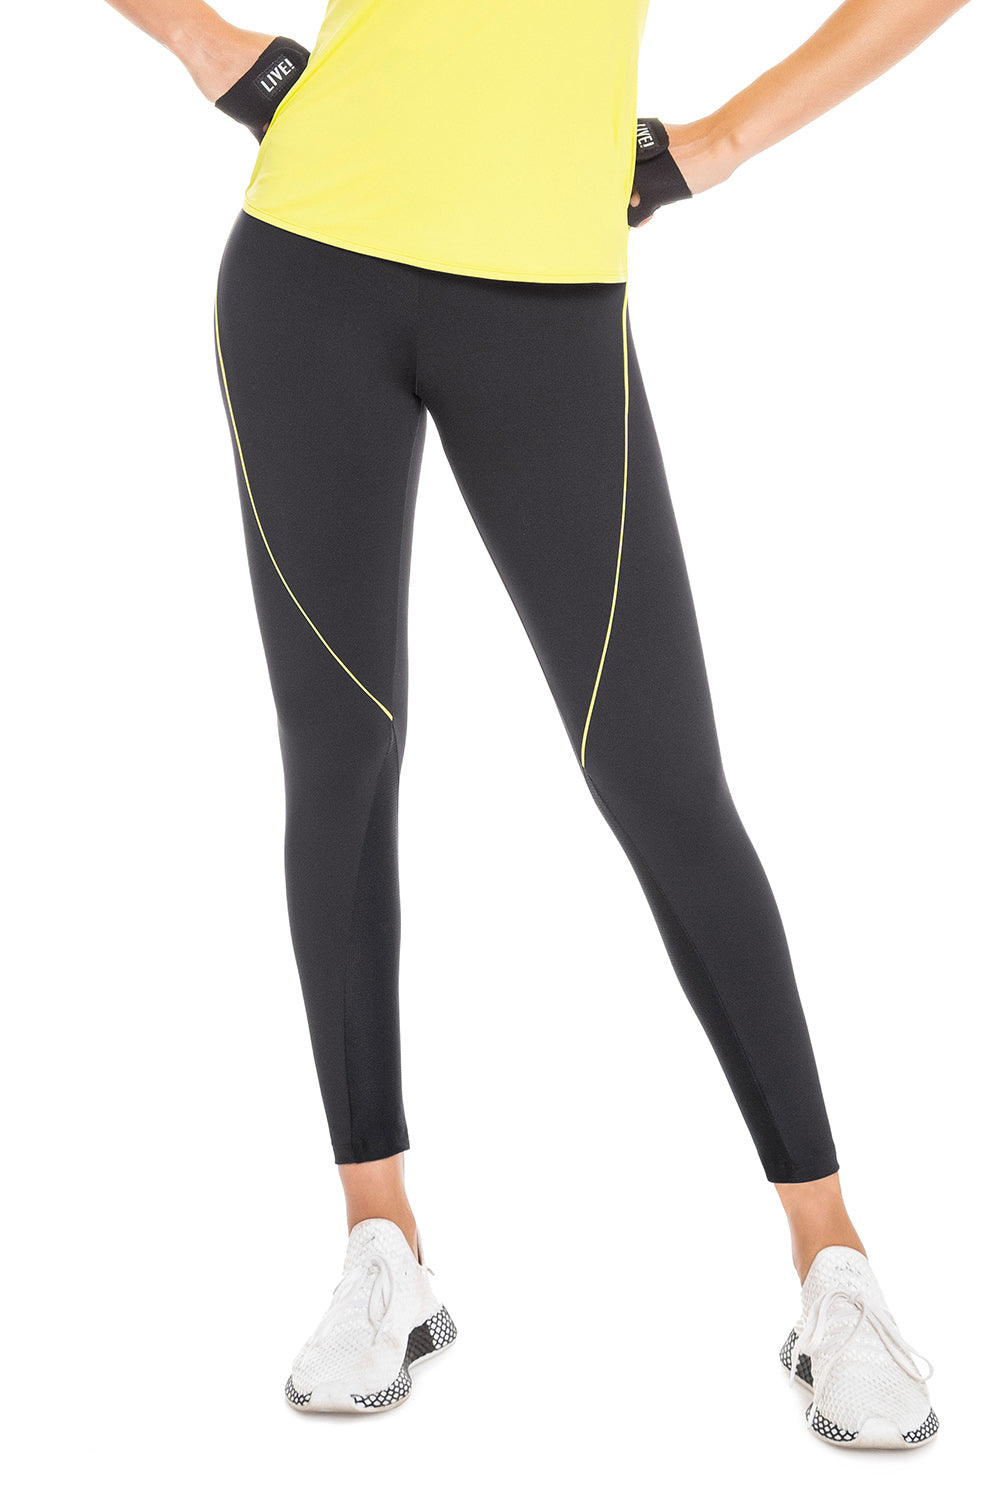 Unstoppable You Legging 1